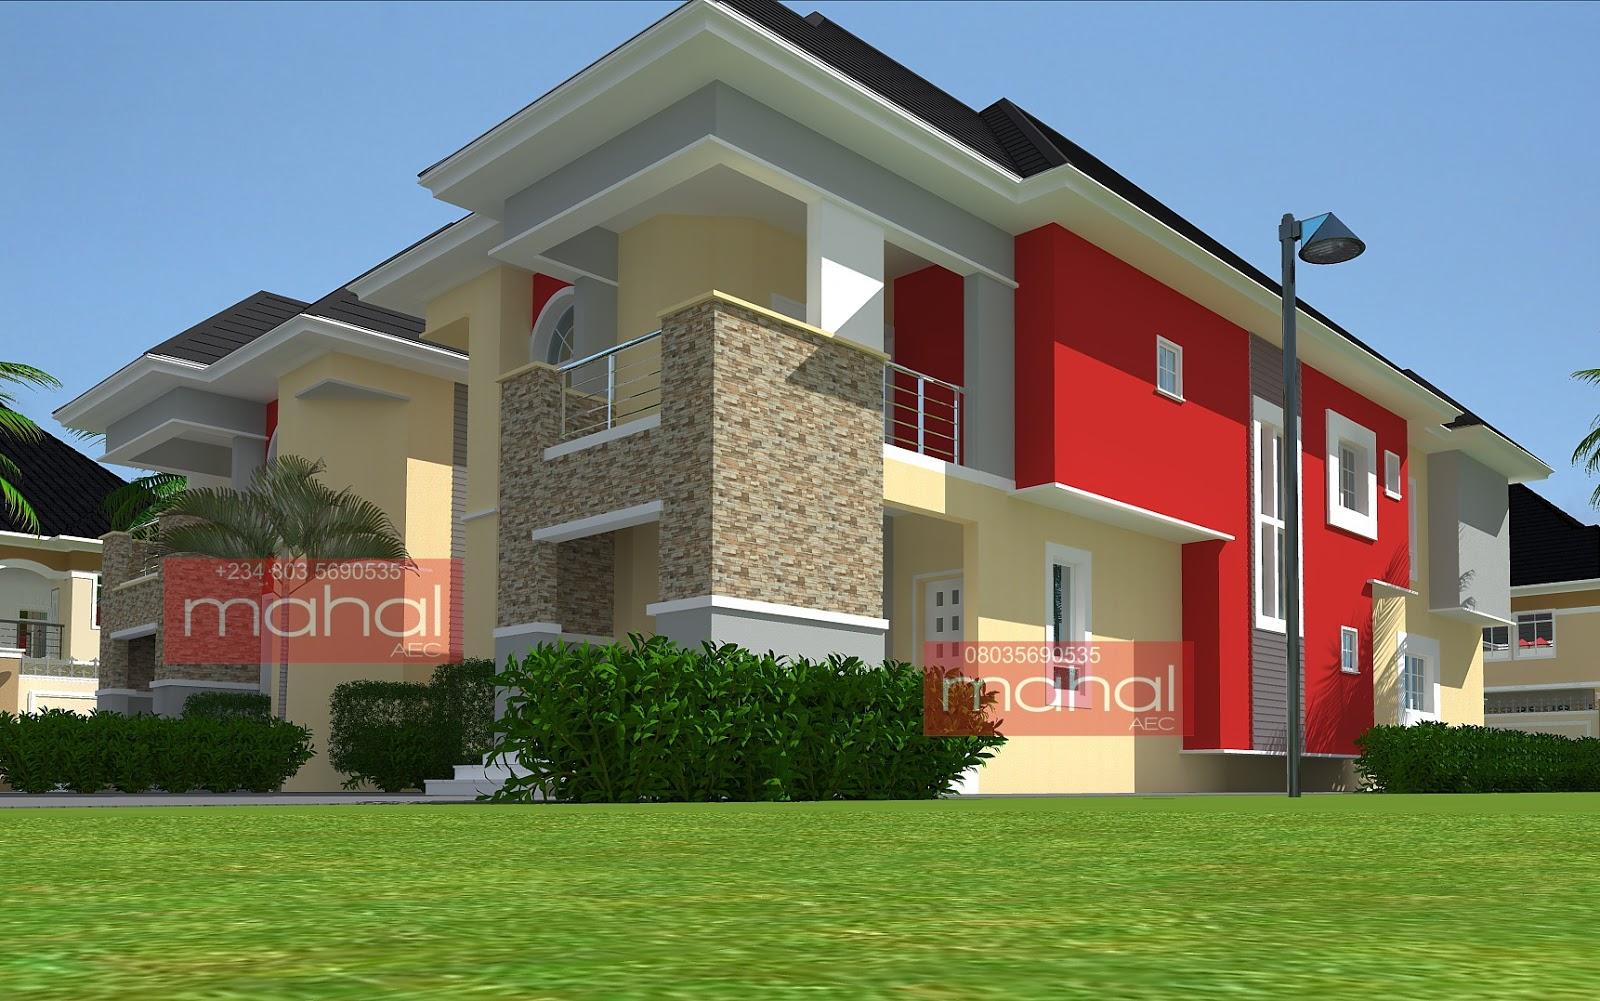 blog+(1) Modern House Plans Home Design Nigeria on design home exterior, design home interior, design home luxury, modern greenhouse building plans, design home lighting, design home floor plan,